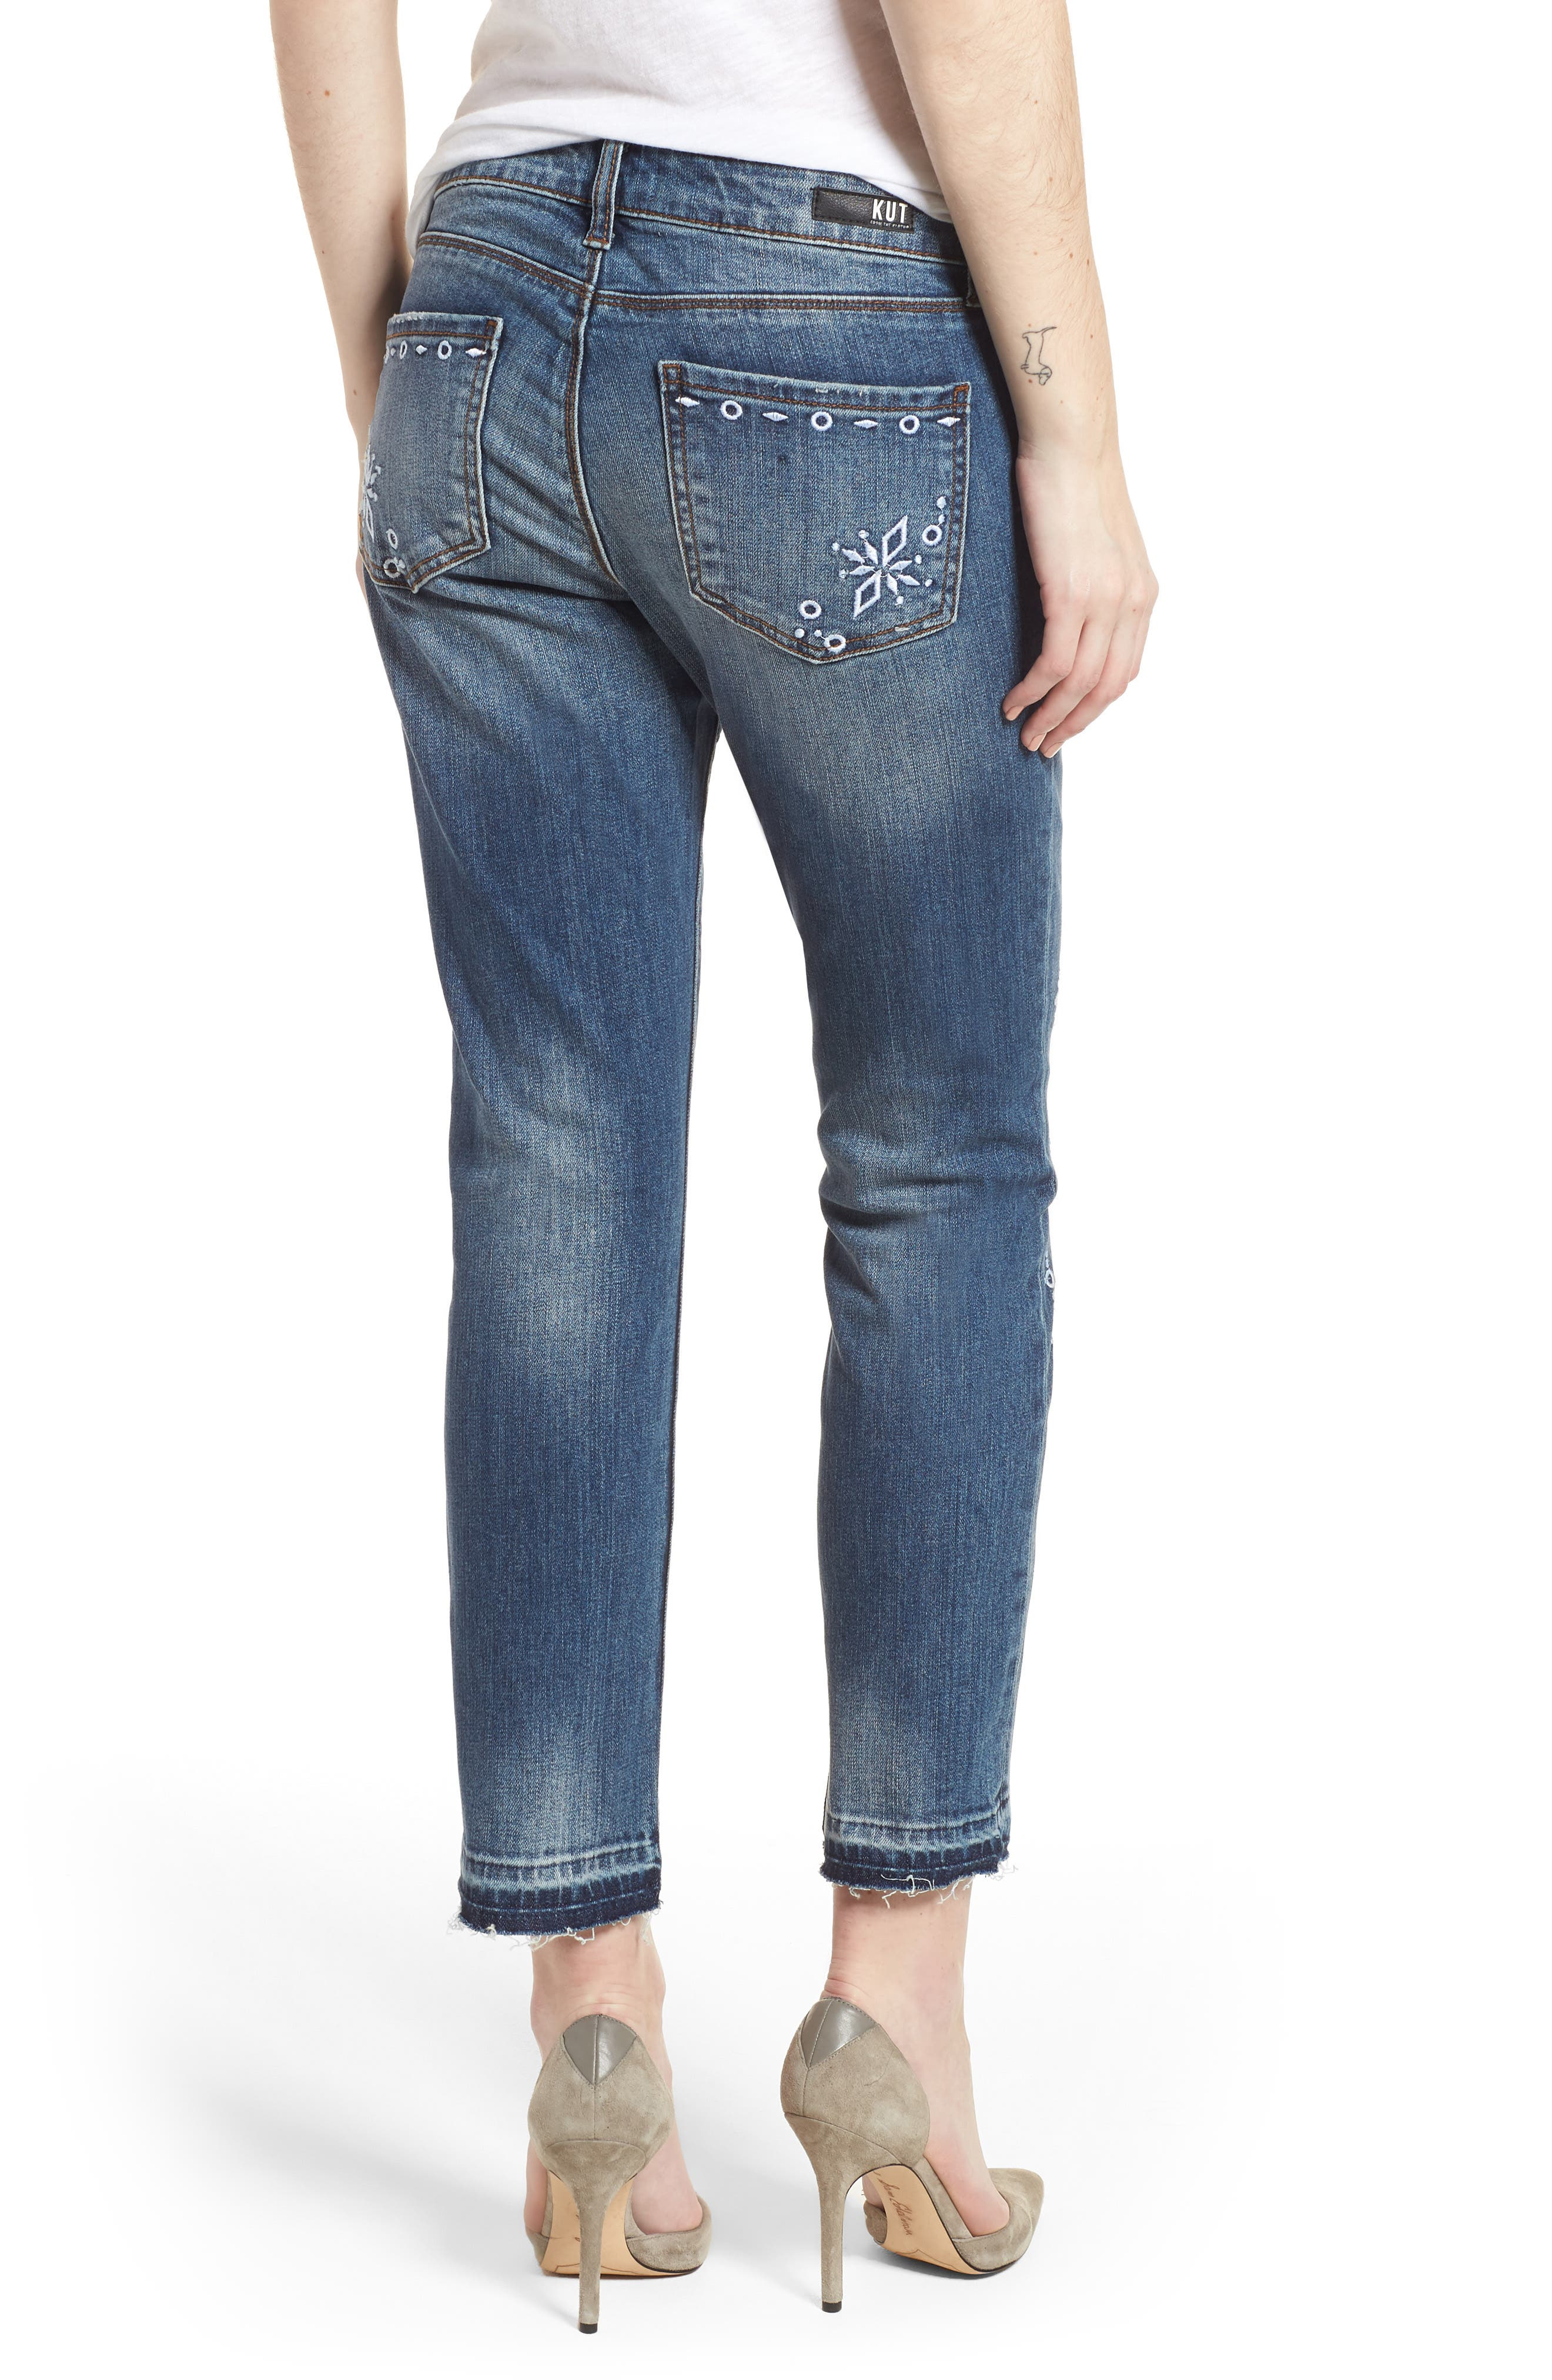 Reese Release Hem Embroidered Jeans,                             Alternate thumbnail 2, color,                             Originated